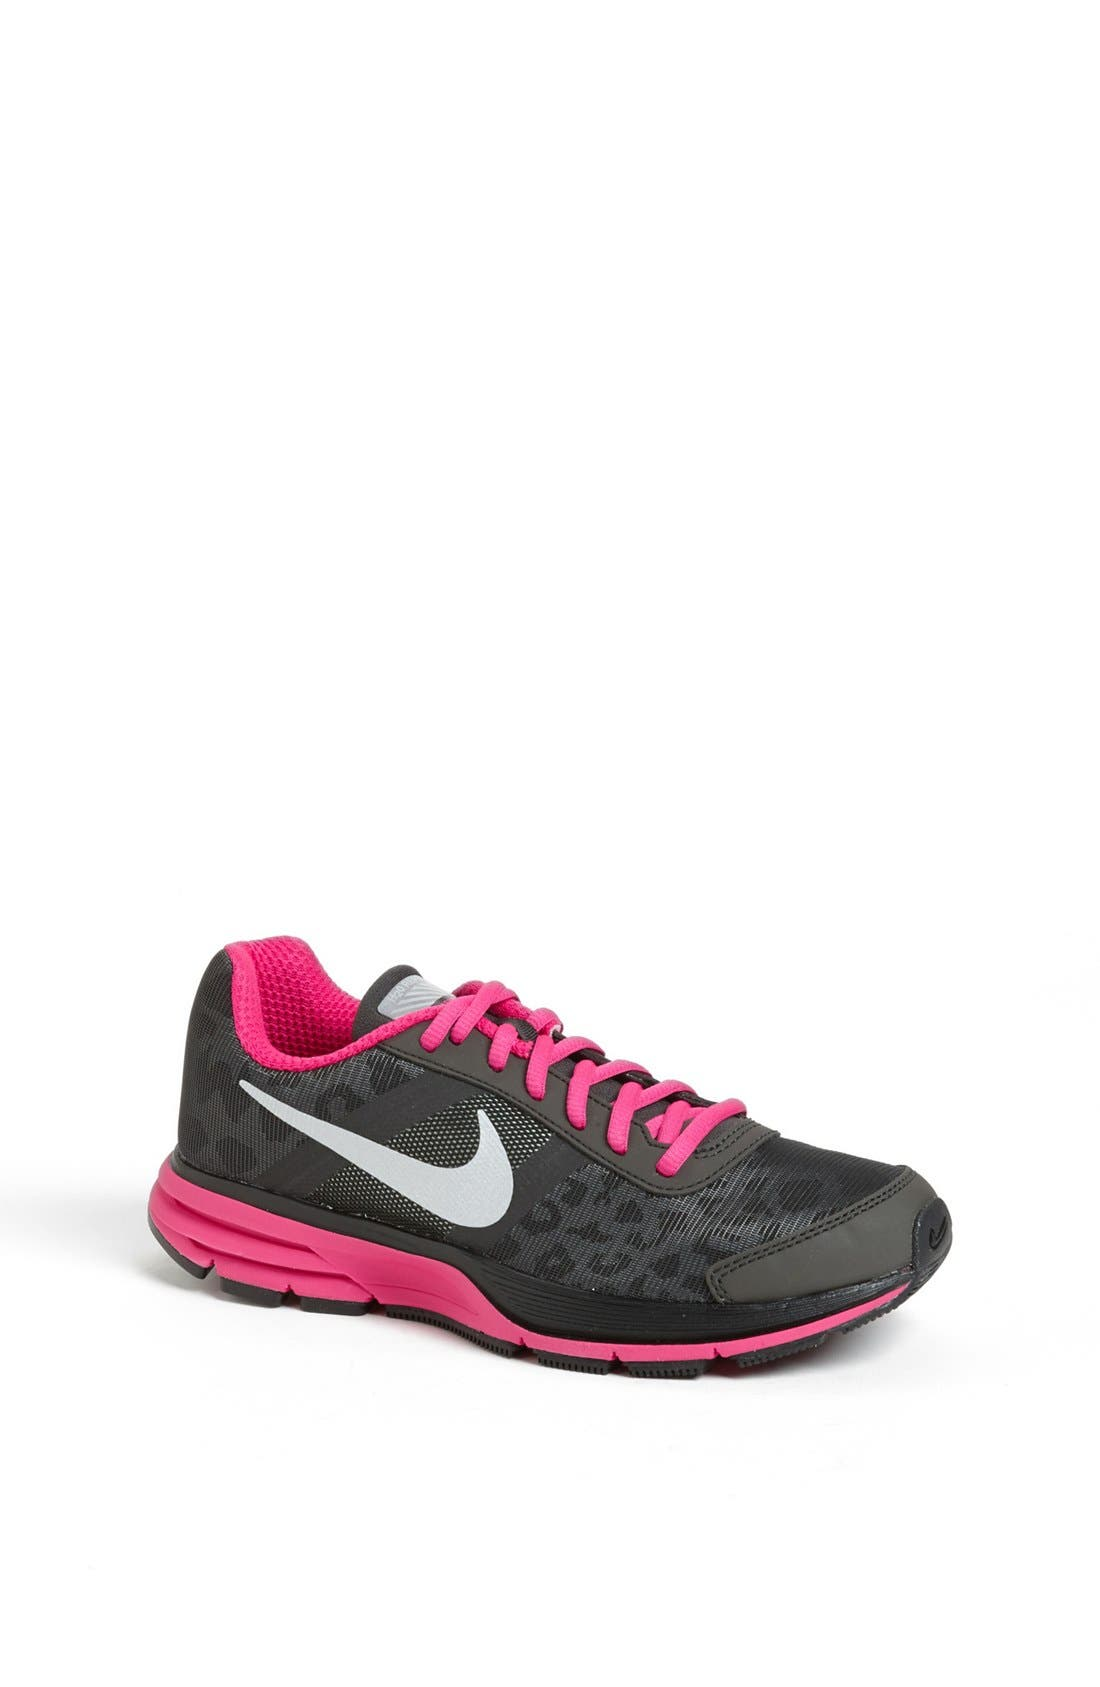 Alternate Image 1 Selected - Nike 'Air Pegasus+ 30 Shield' Running Shoe (Little Kid & Big Kid)